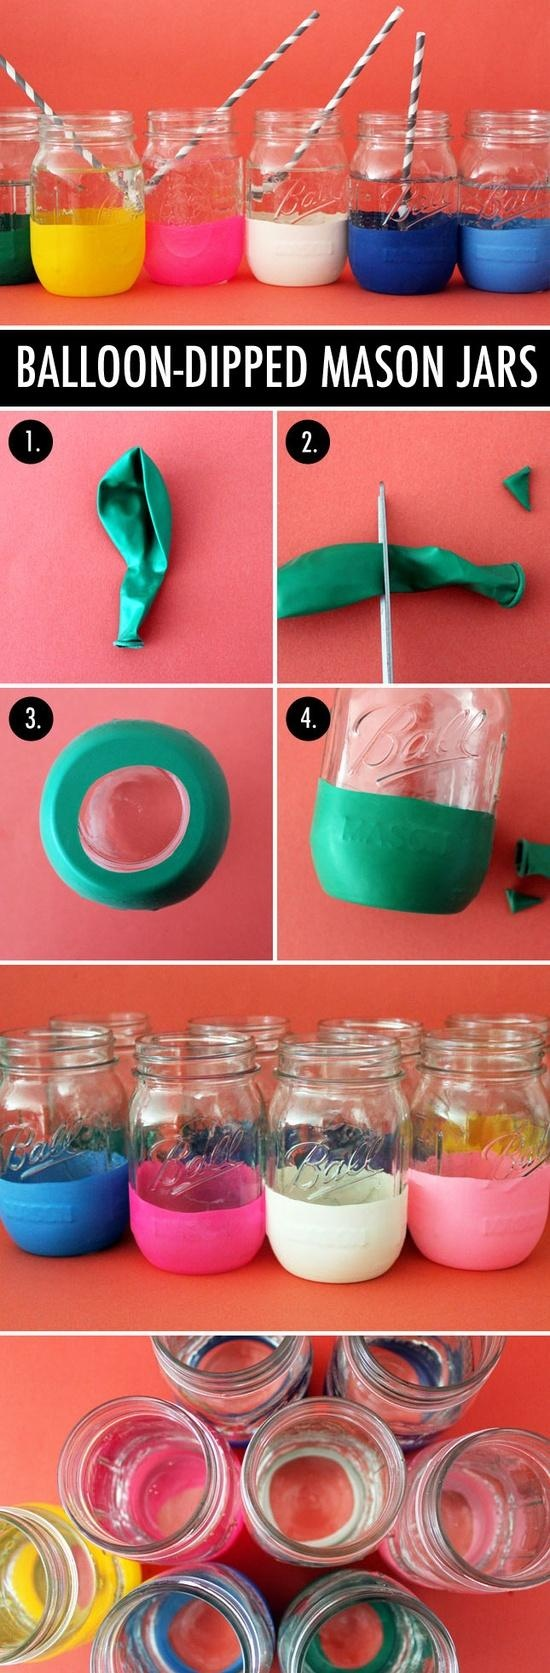 DIY Balloon-Dipped Mason Jars!! Change up the color for the holiday. Takes five minutes tops!!